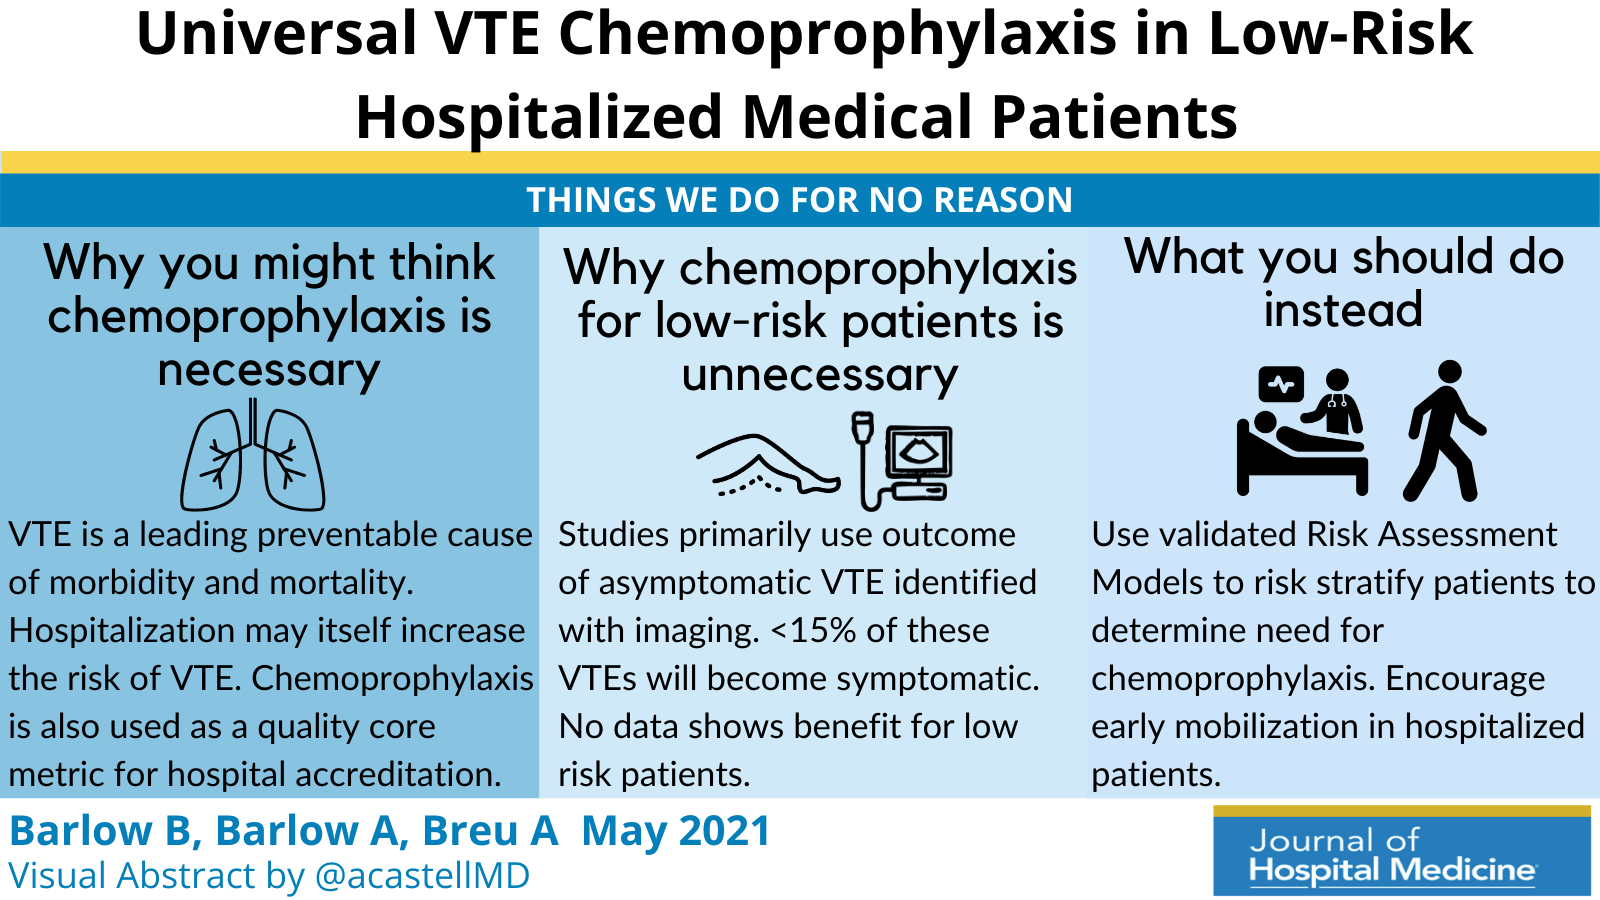 Things We Do for No Reason™: Universal Venous Thromboembolism Chemoprophylaxis in Low-Risk Hospitalized Medical Patients